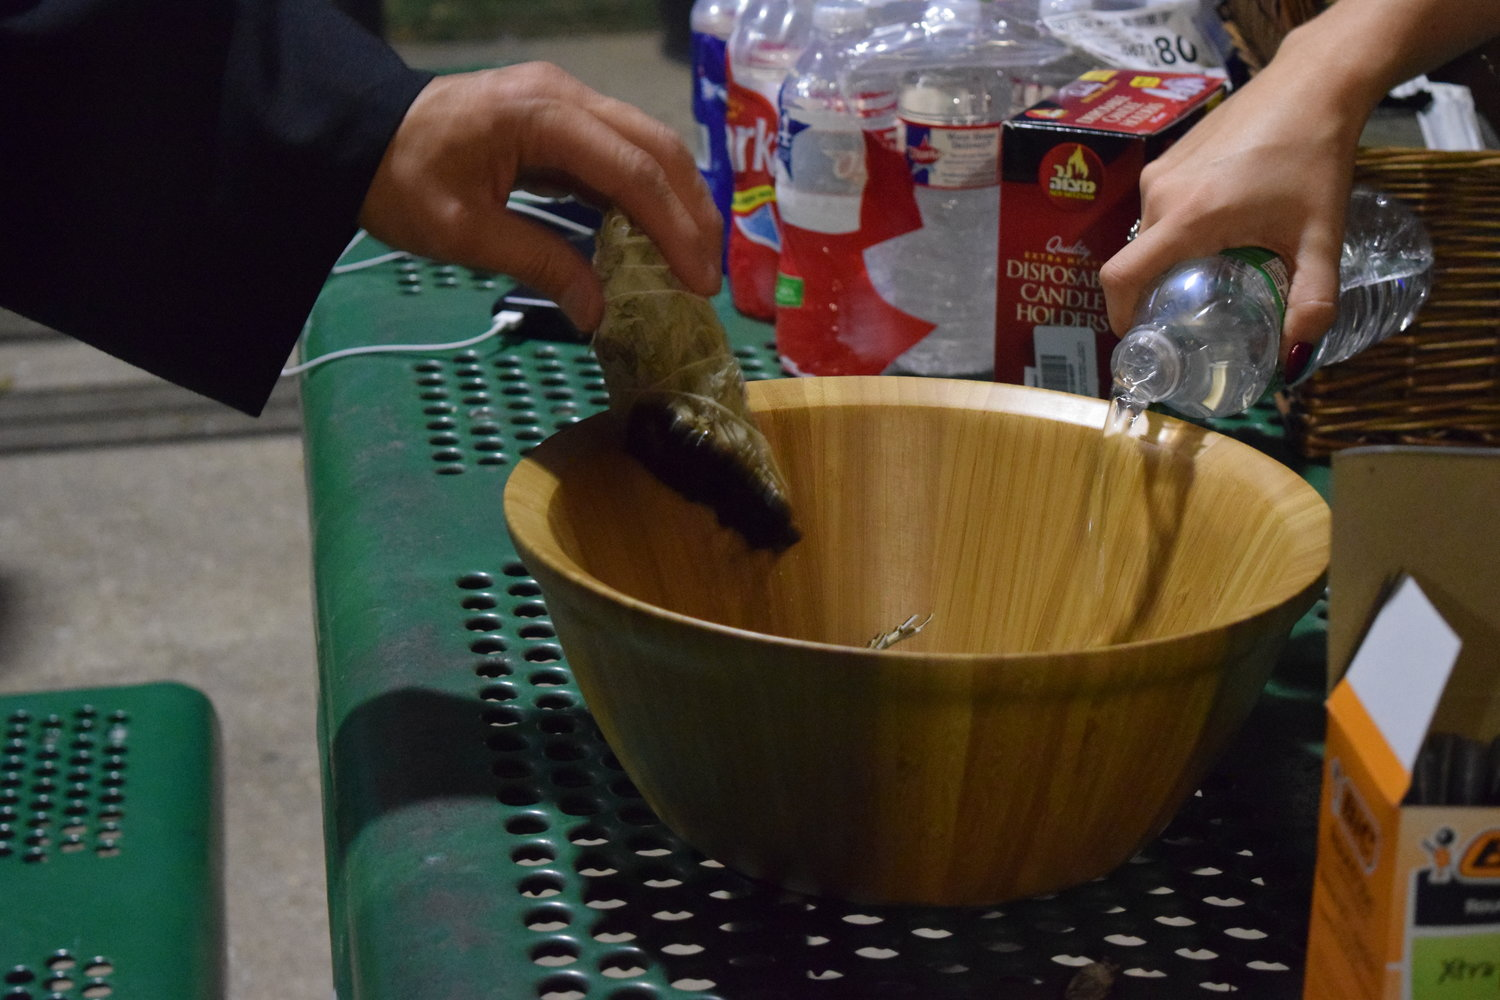 Activists put burning sage out in a communal bowl at the event.